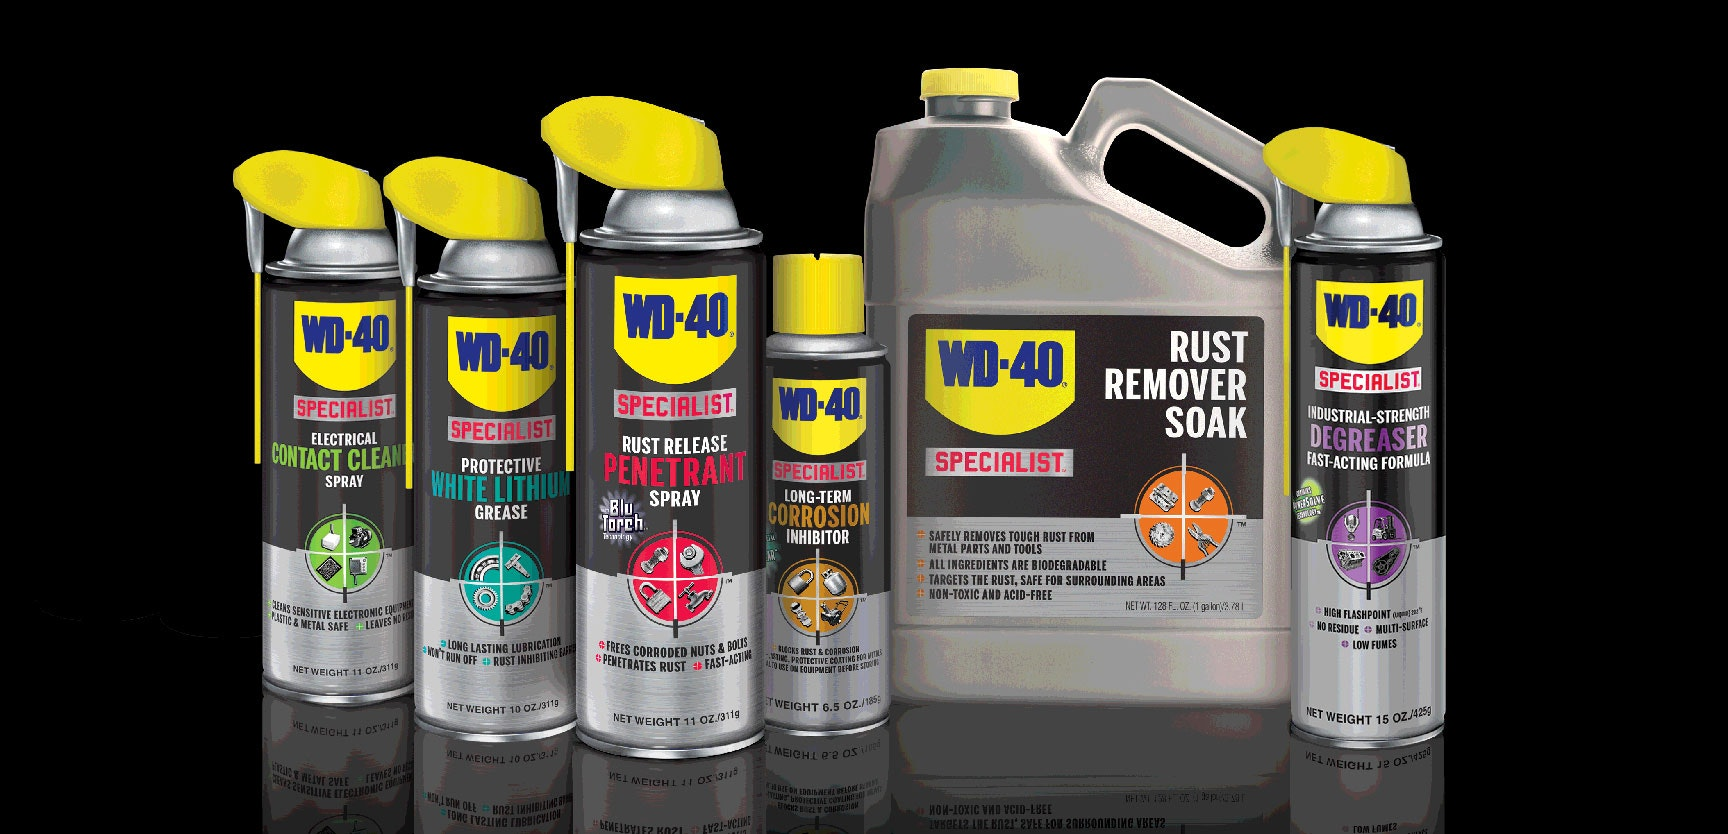 wd-40® company | wd-40® product & brand history | wd-40